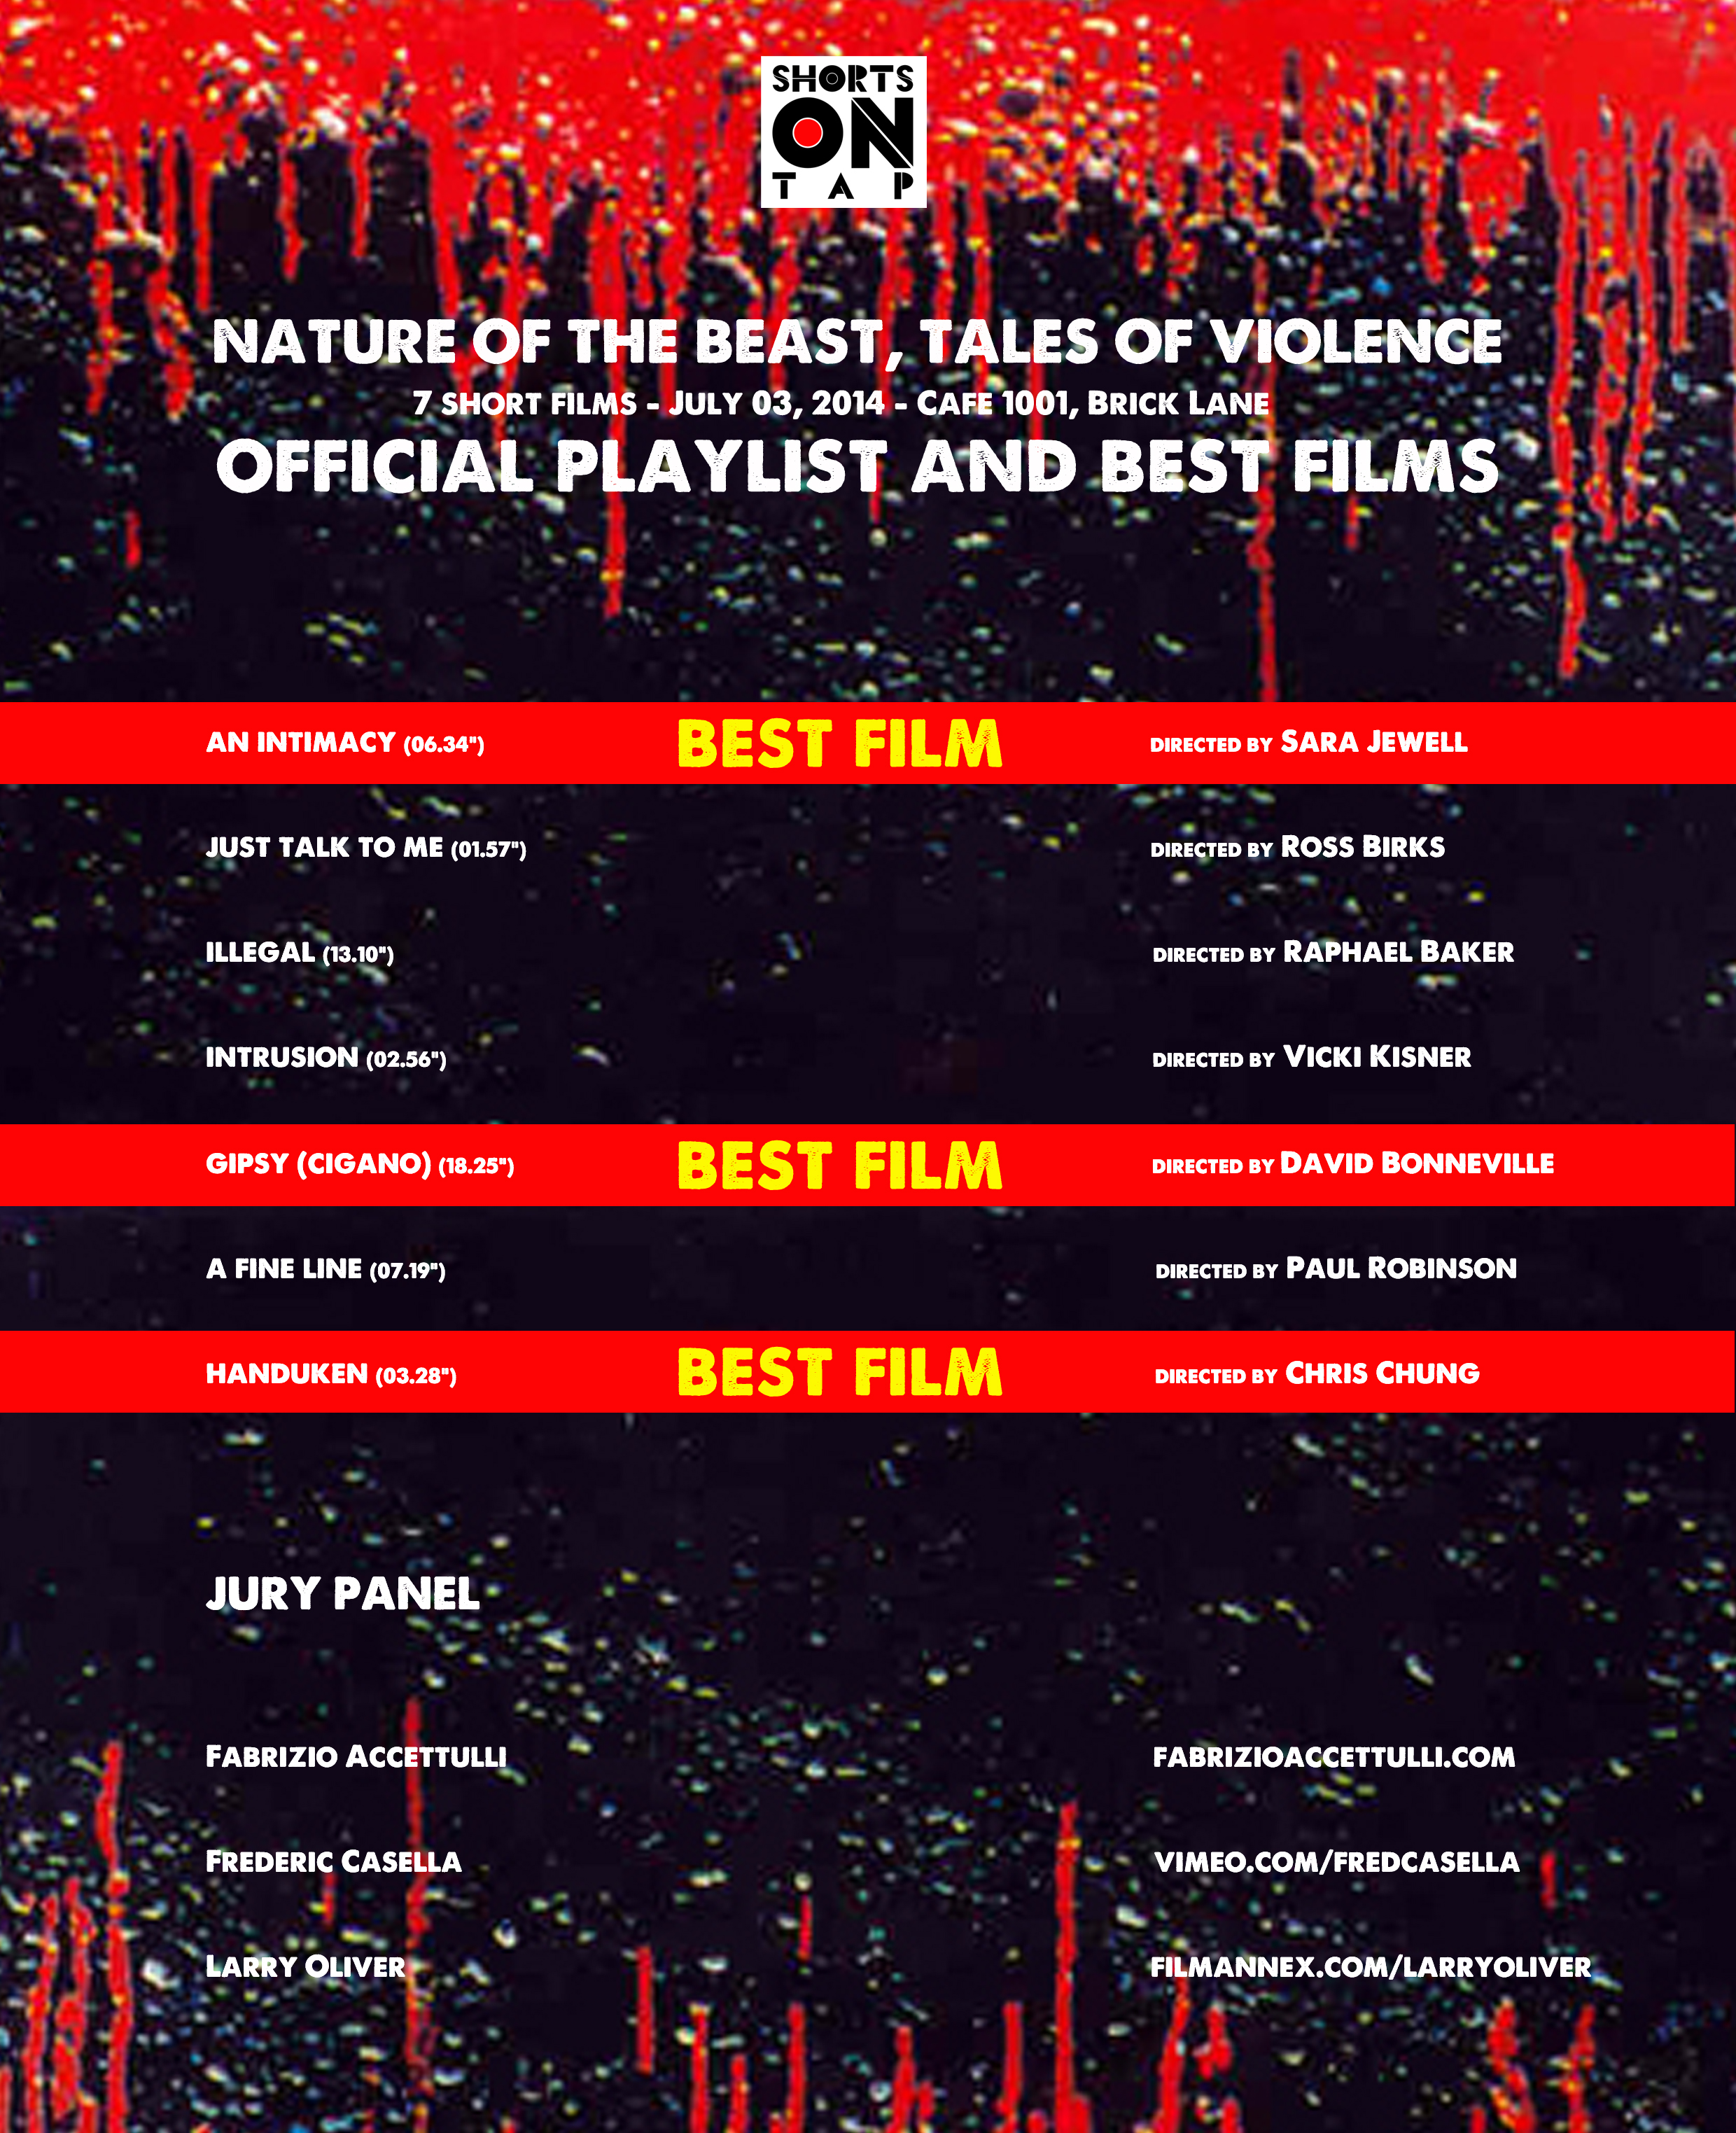 NATURE OF THE BEAST  PLAYLIST AND BEST FILMS